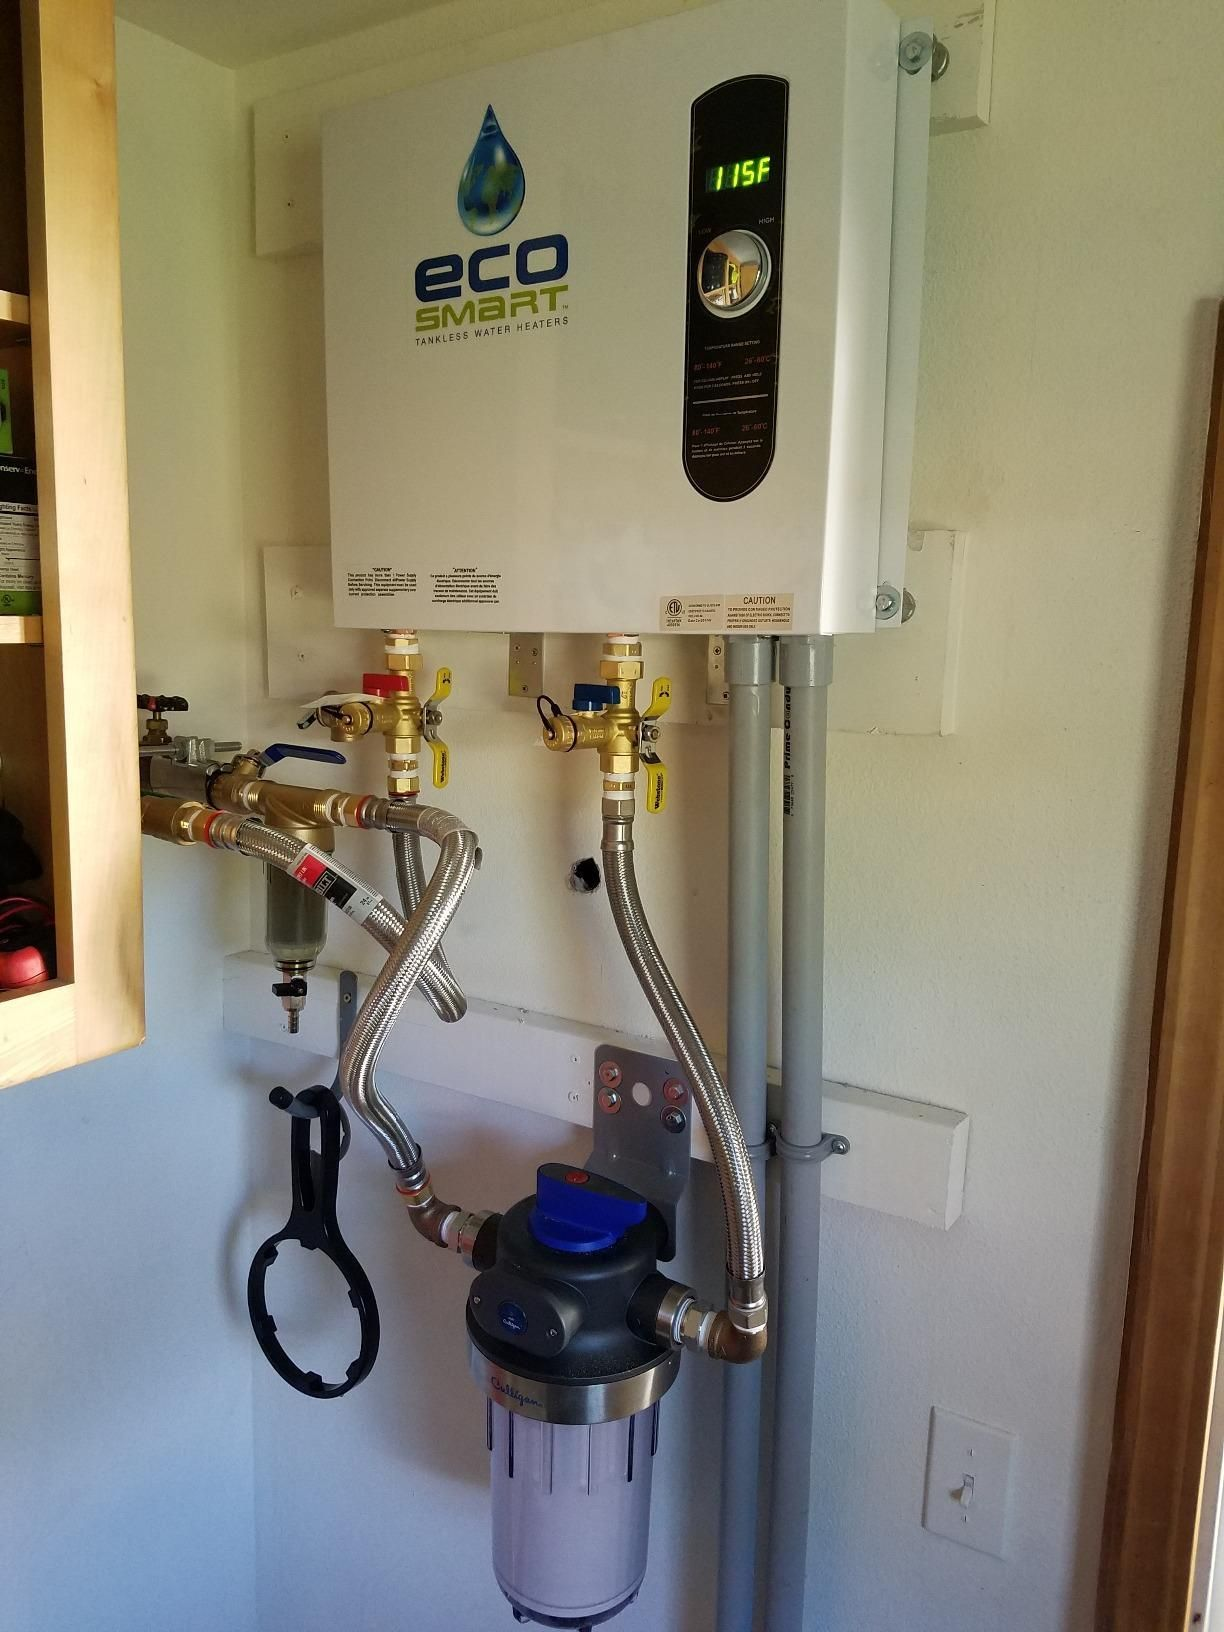 medium resolution of save money ecosmart tankless water heaters only turn on when you need hot water plus they cut down on heat loss saving you up to 50 in water heating